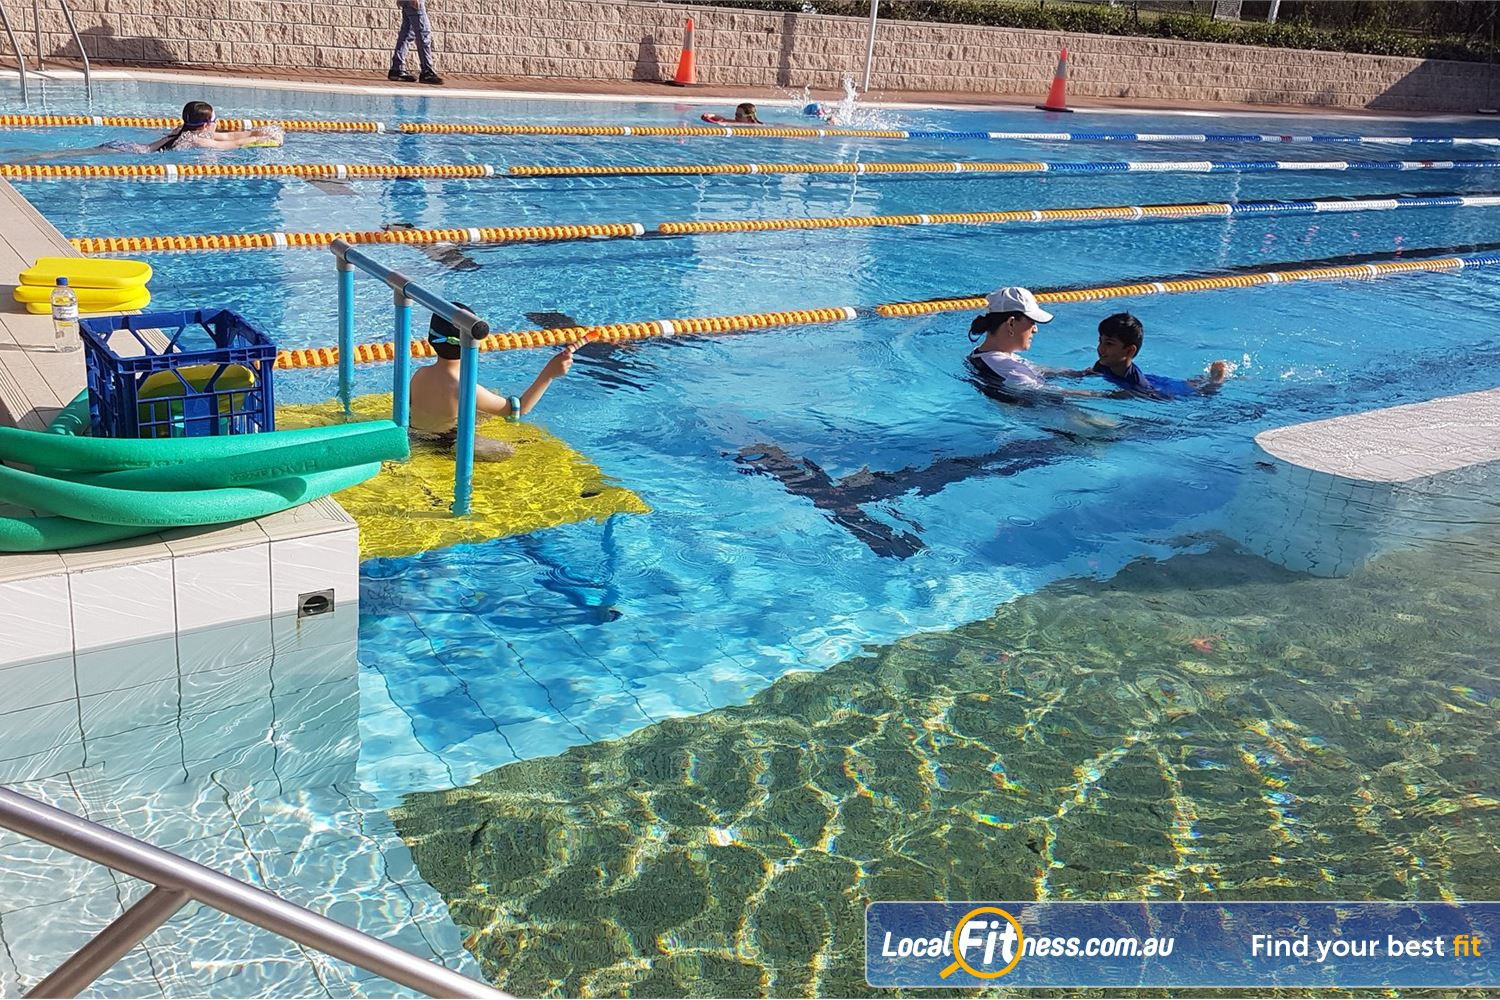 North Ryde Fitness & Aquatic Near Denistone 25m North Ryde swimming pool which is available for Junior/Adult Swimming Lessons.